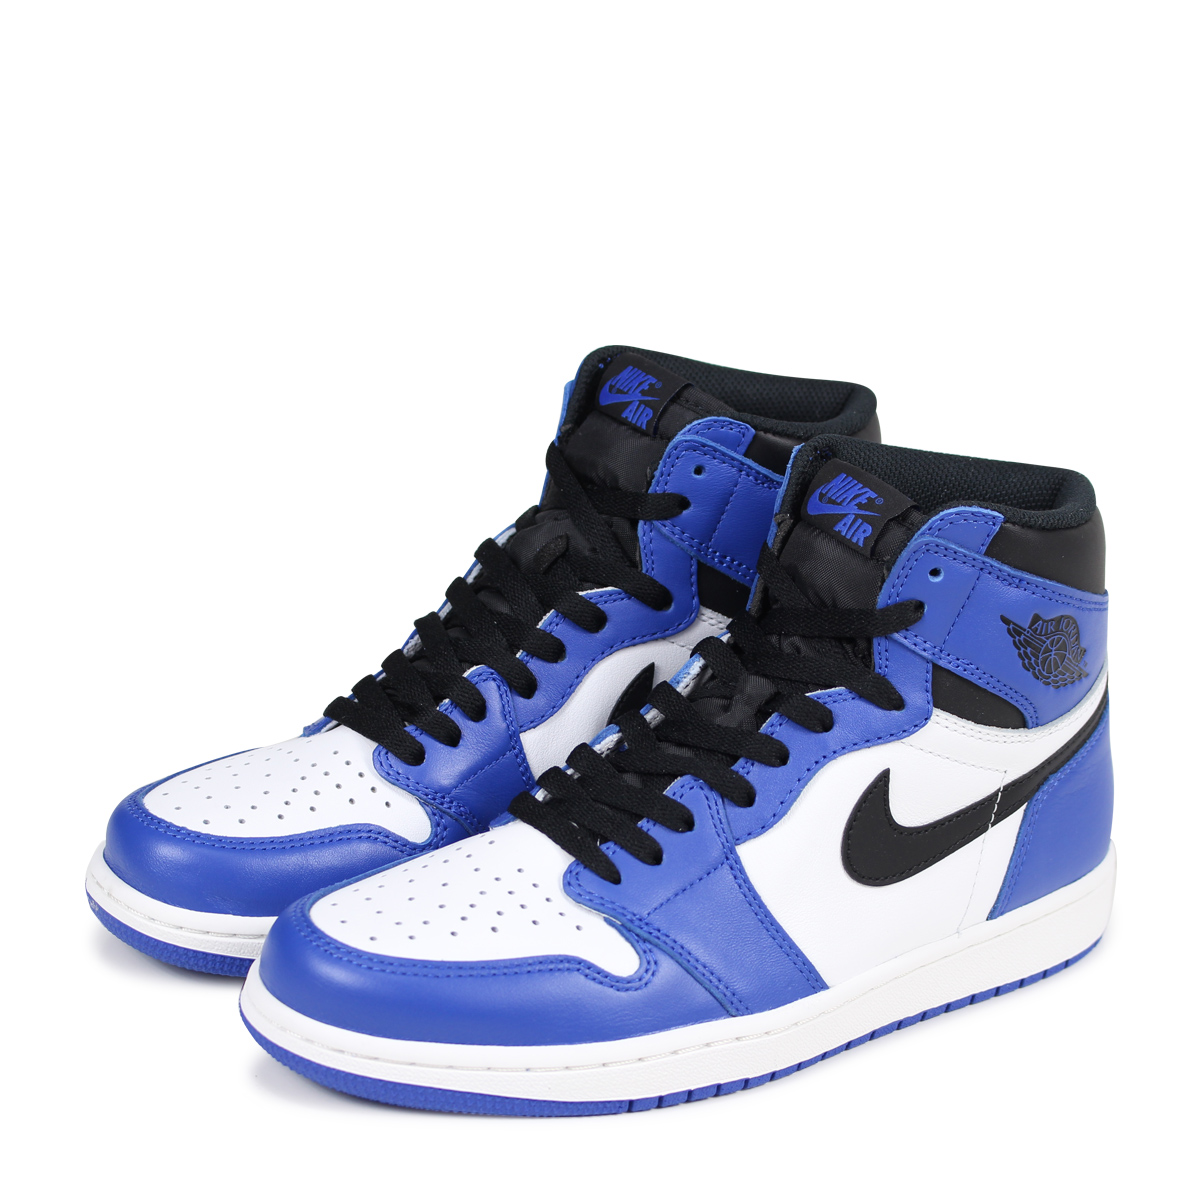 5c69c7f9d9cda8 ALLSPORTS  NIKE AIR JORDAN 1 RETRO HIGH OG GAME ROYAL Nike Air Jordan 1  nostalgic high sneakers men 555